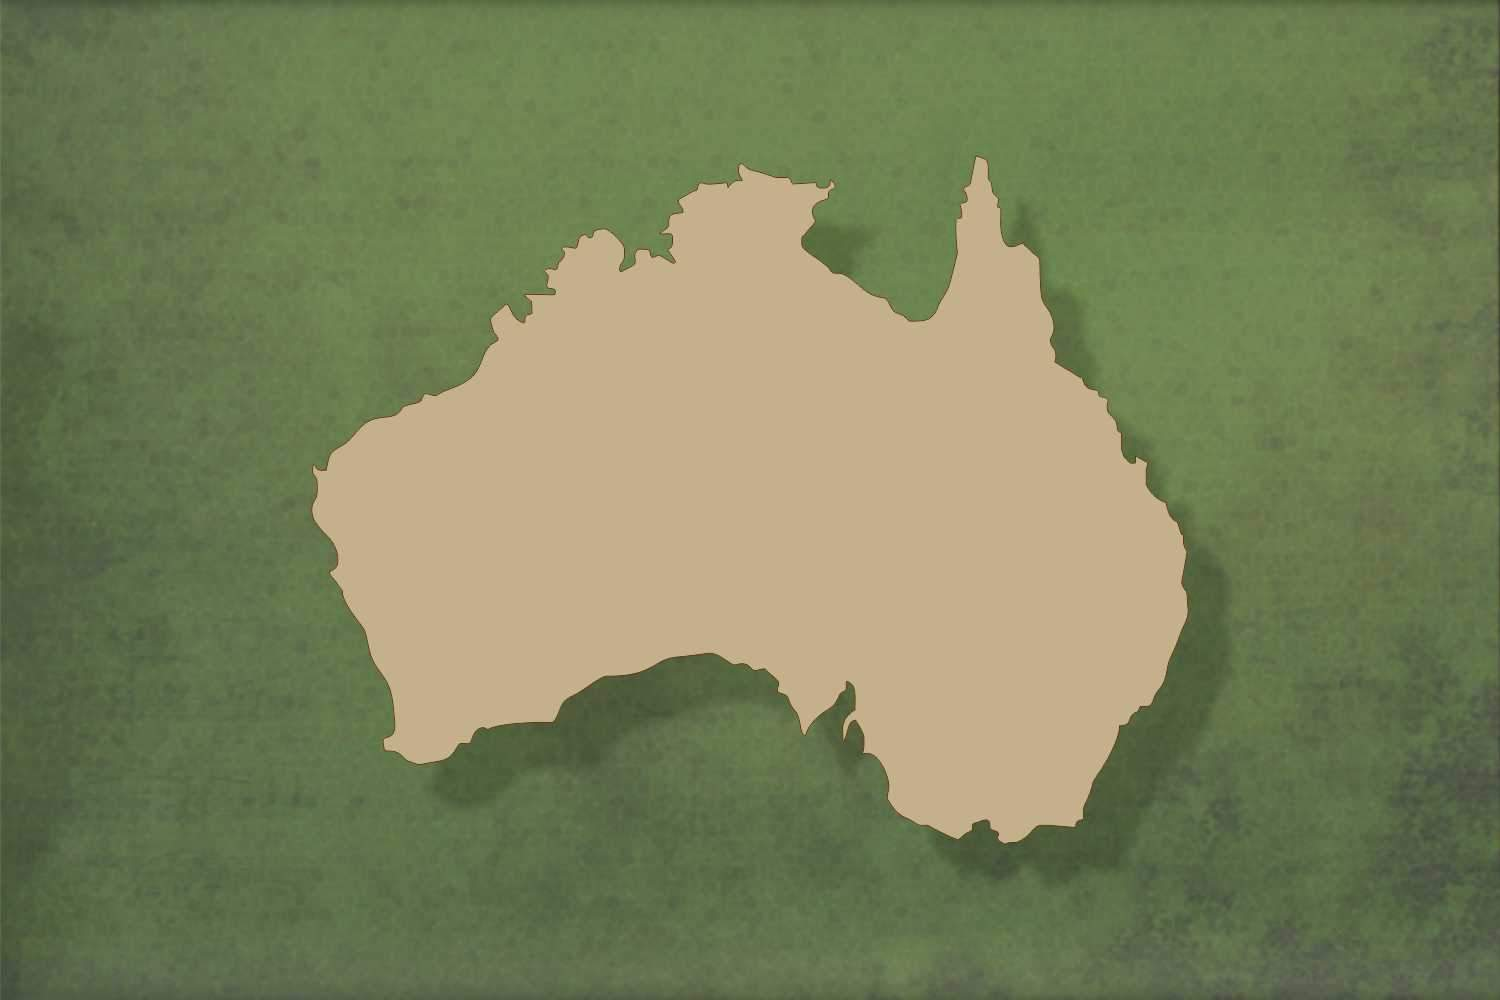 Laser cut, blank wooden Australia shape for craft